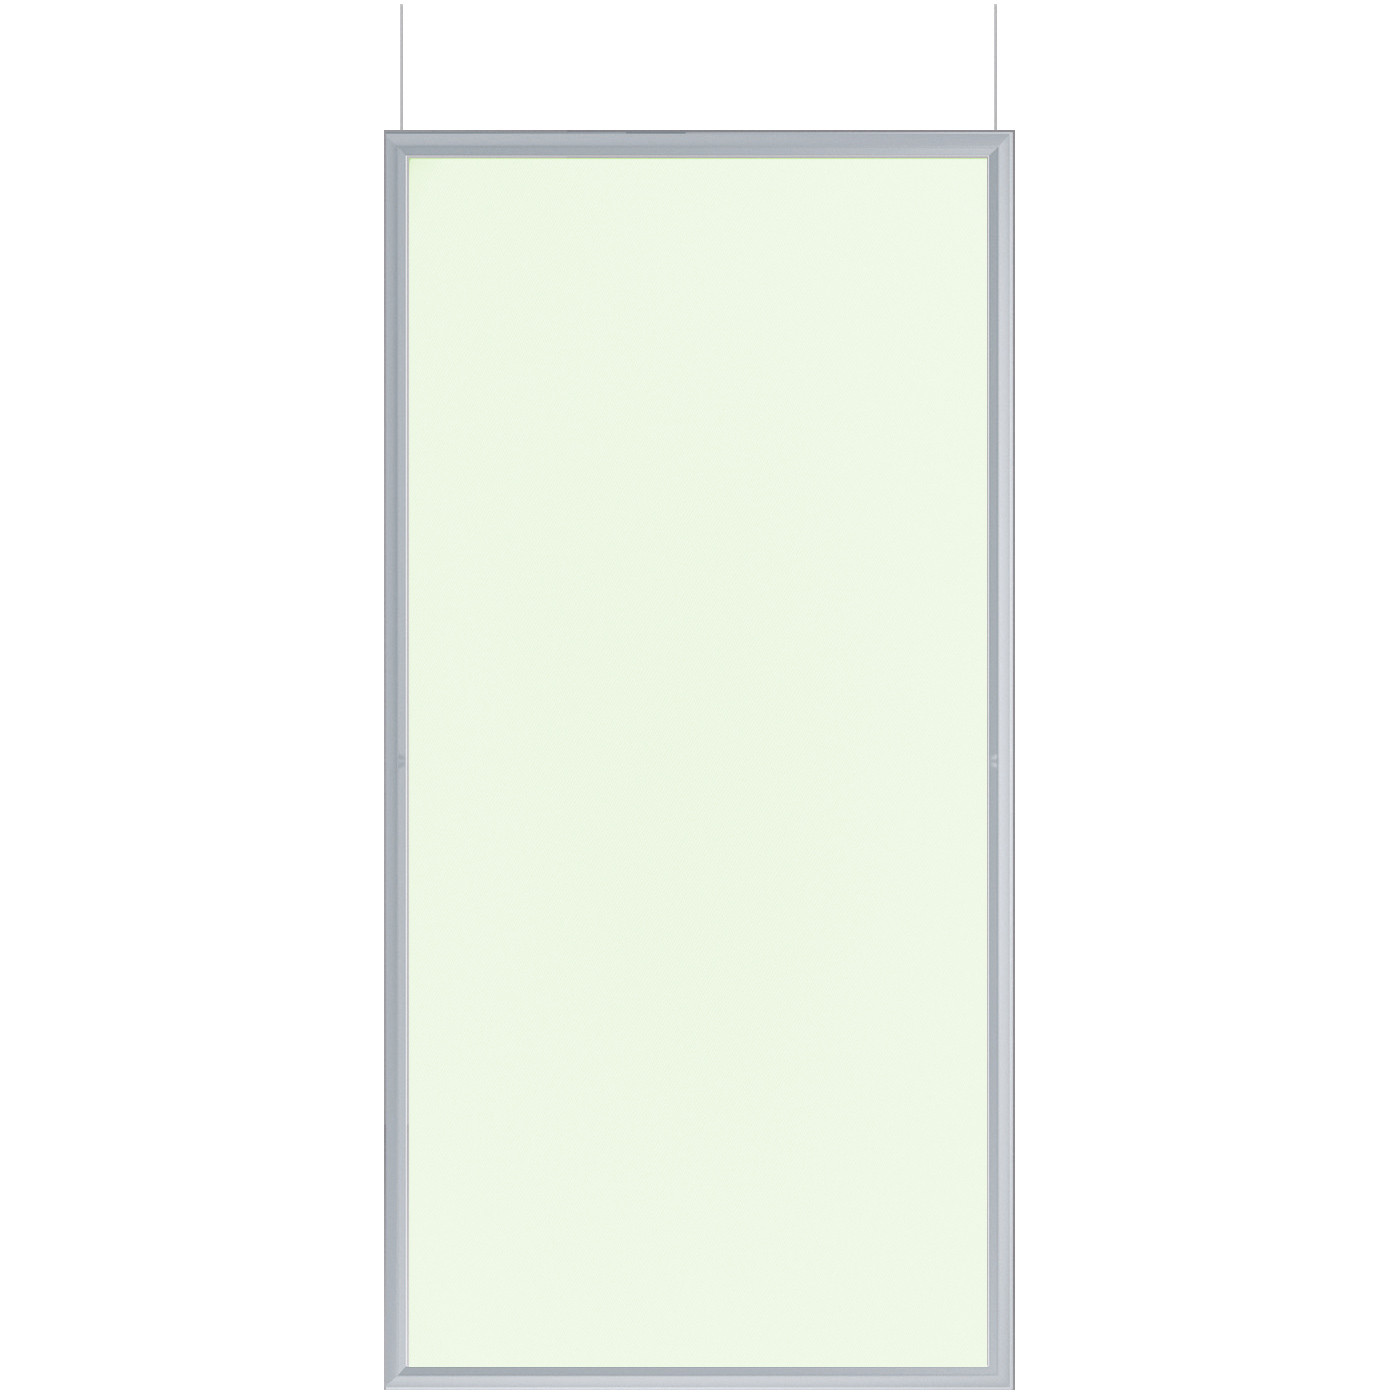 Artemide Discovery Space Rectangular RGBW Pendelleuchte